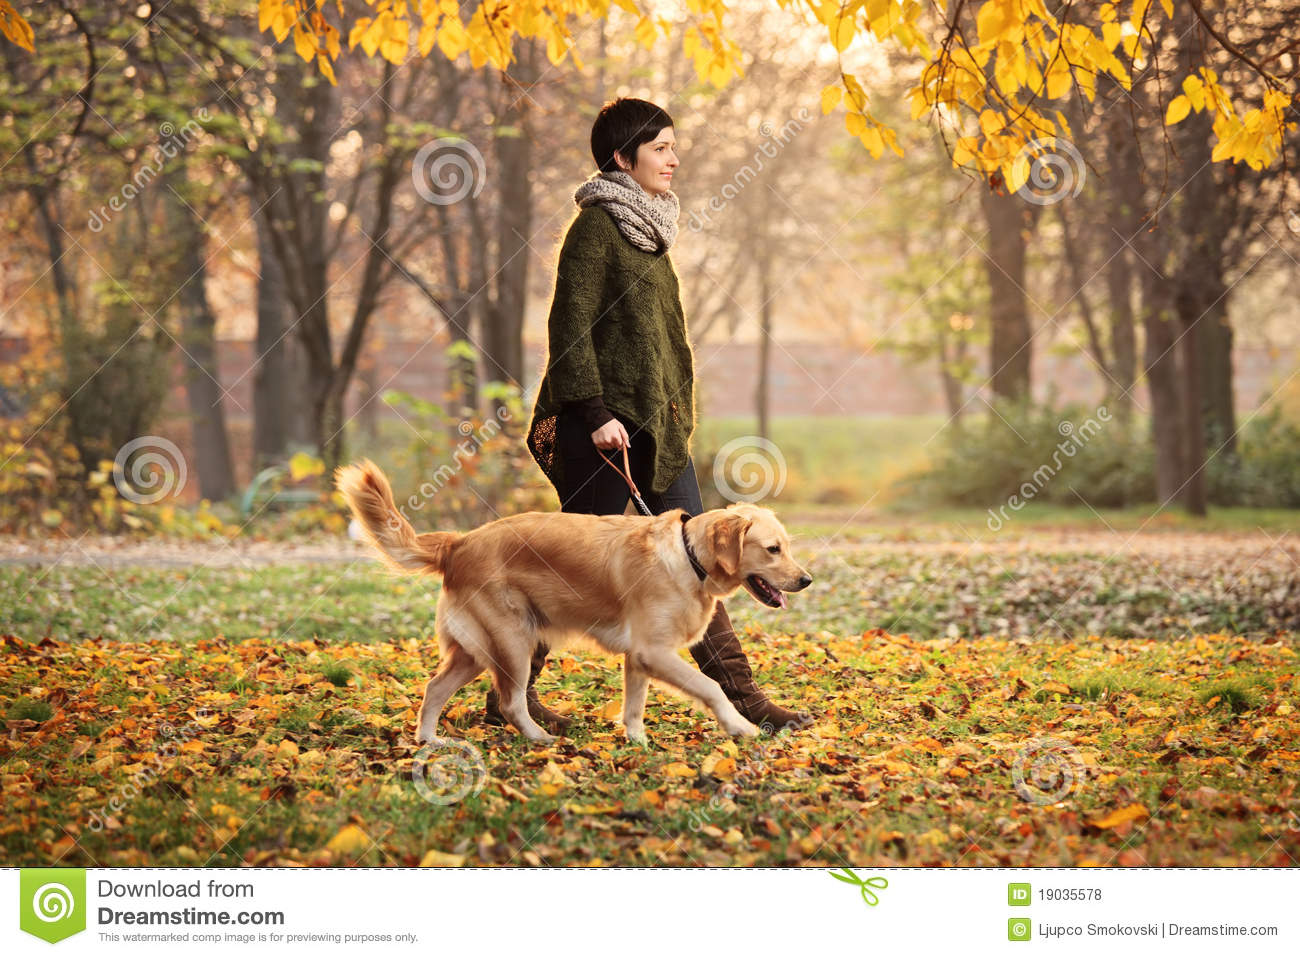 Download A Girl And Her Dog Walking In A Park In Autumn Stock Photo - Image of casual, friendship: 19035578